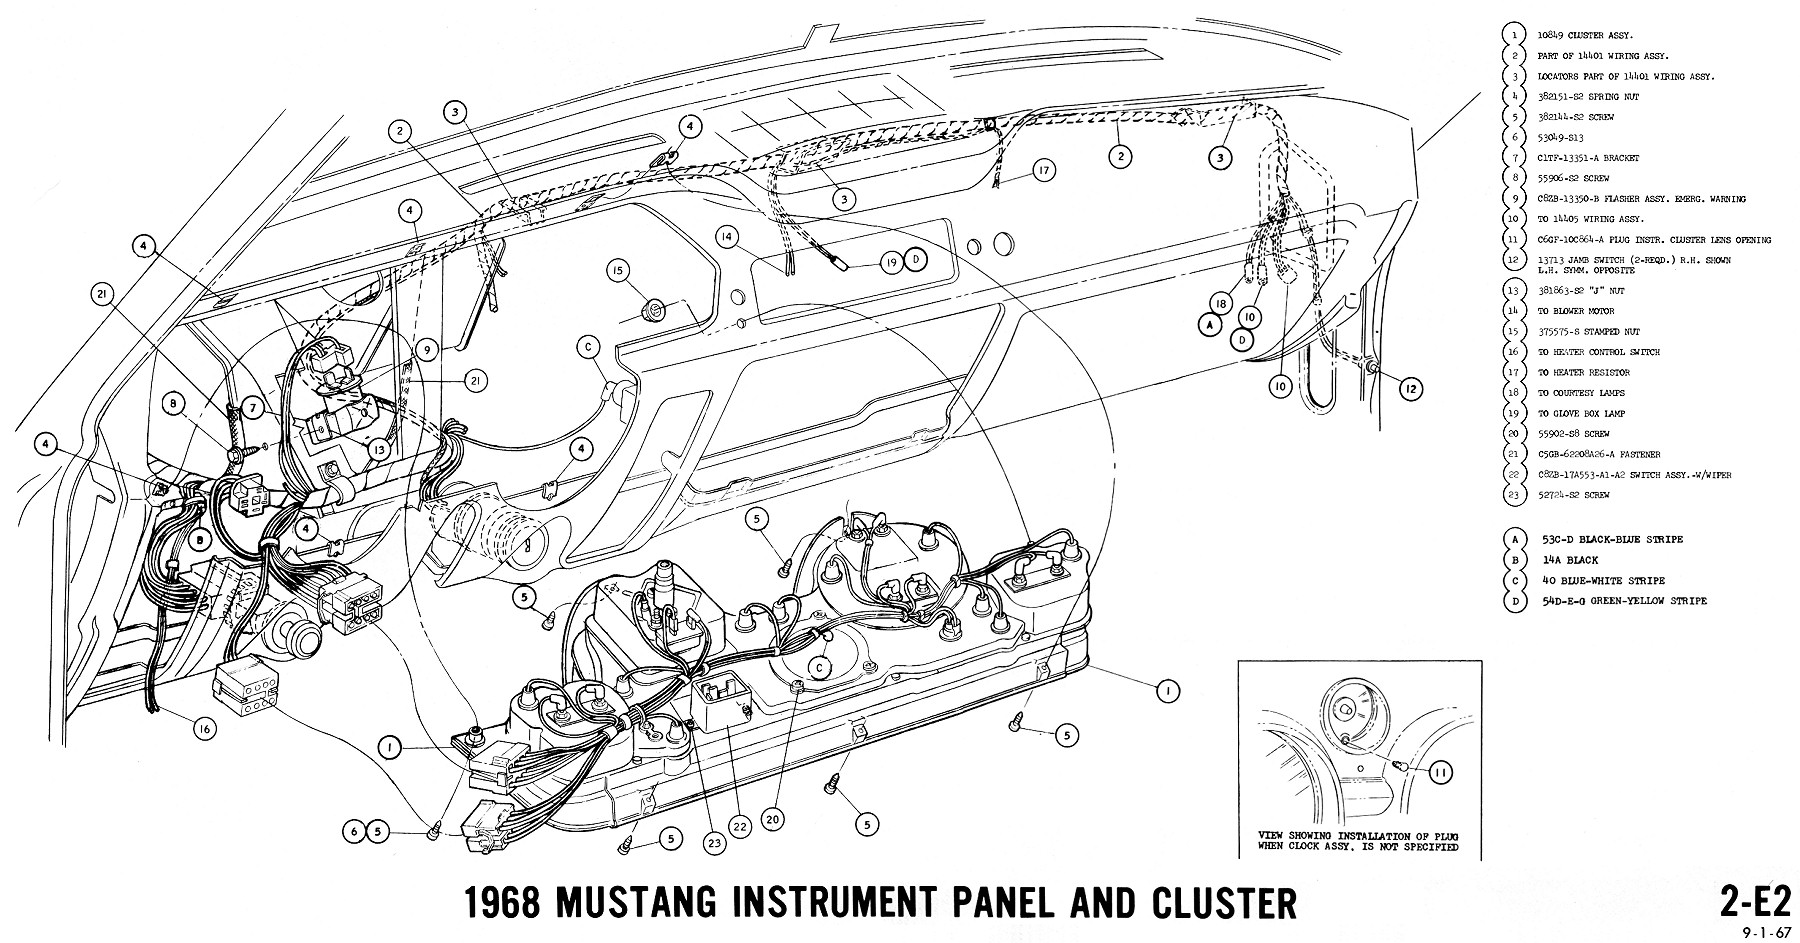 1968 mustang wiring diagram instruments 2 1969 mustang dash wiring diagram 1969 mustang wiring routing 1969 mustang wiring diagram online at gsmx.co